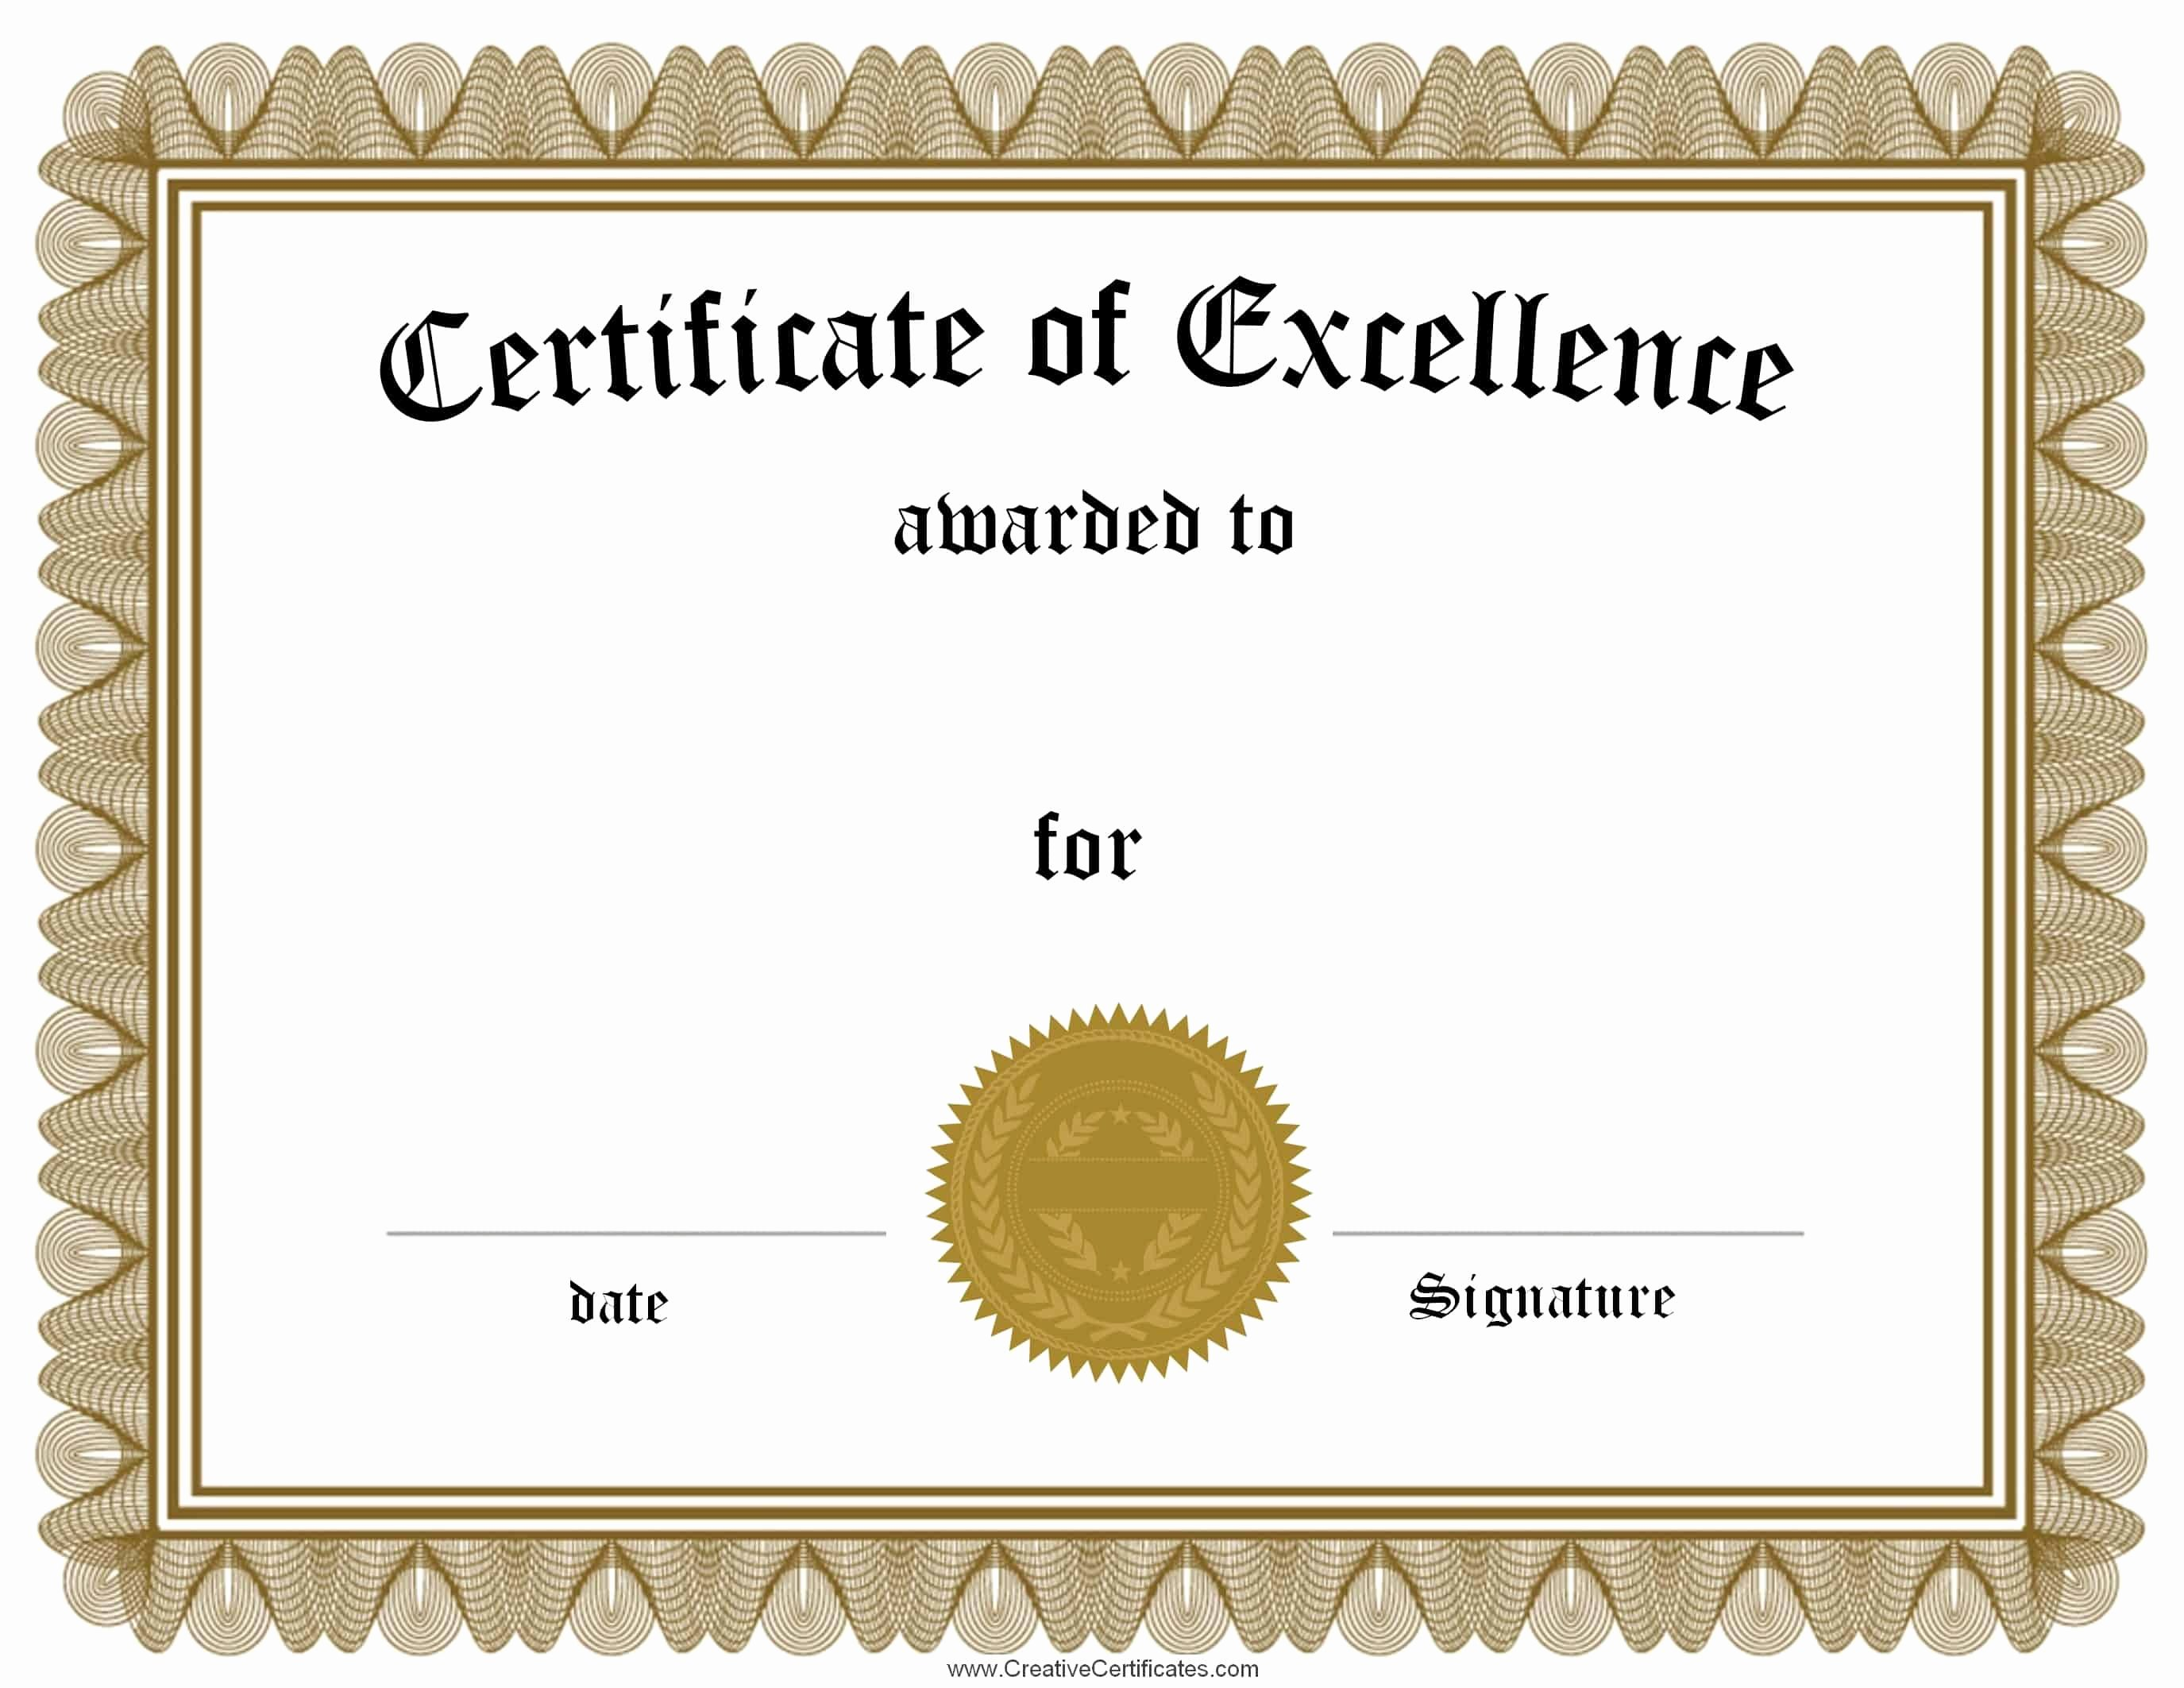 Certificate Of Excellence Template Awesome Free Customizable Certificate Of Achievement